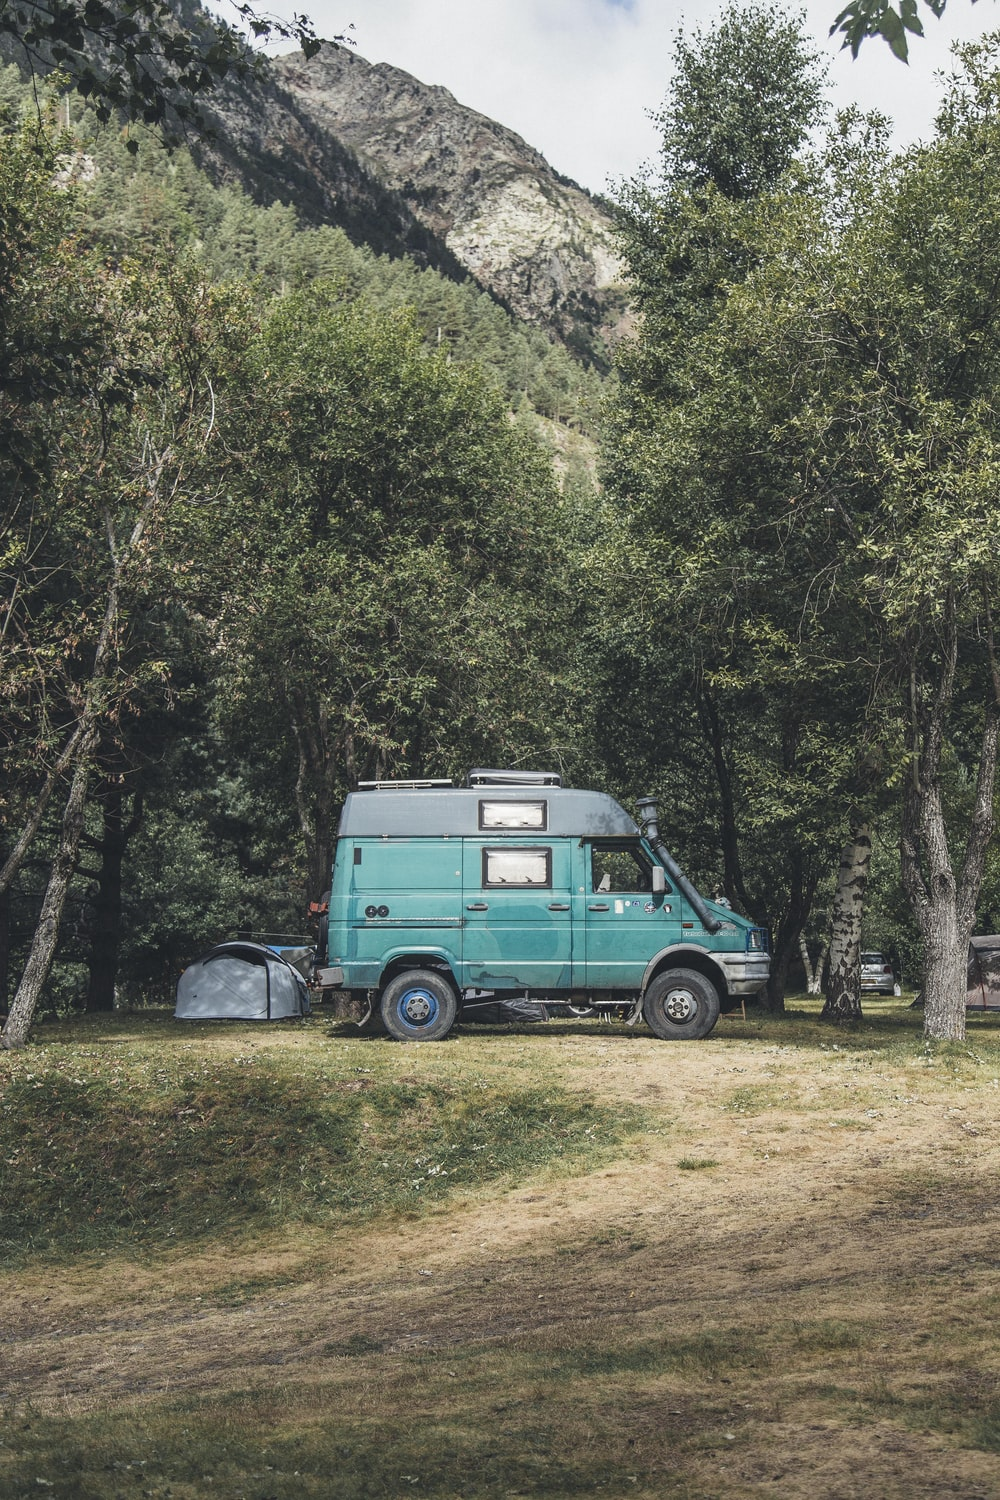 landscape photography of parked teal and black conversion van near trees